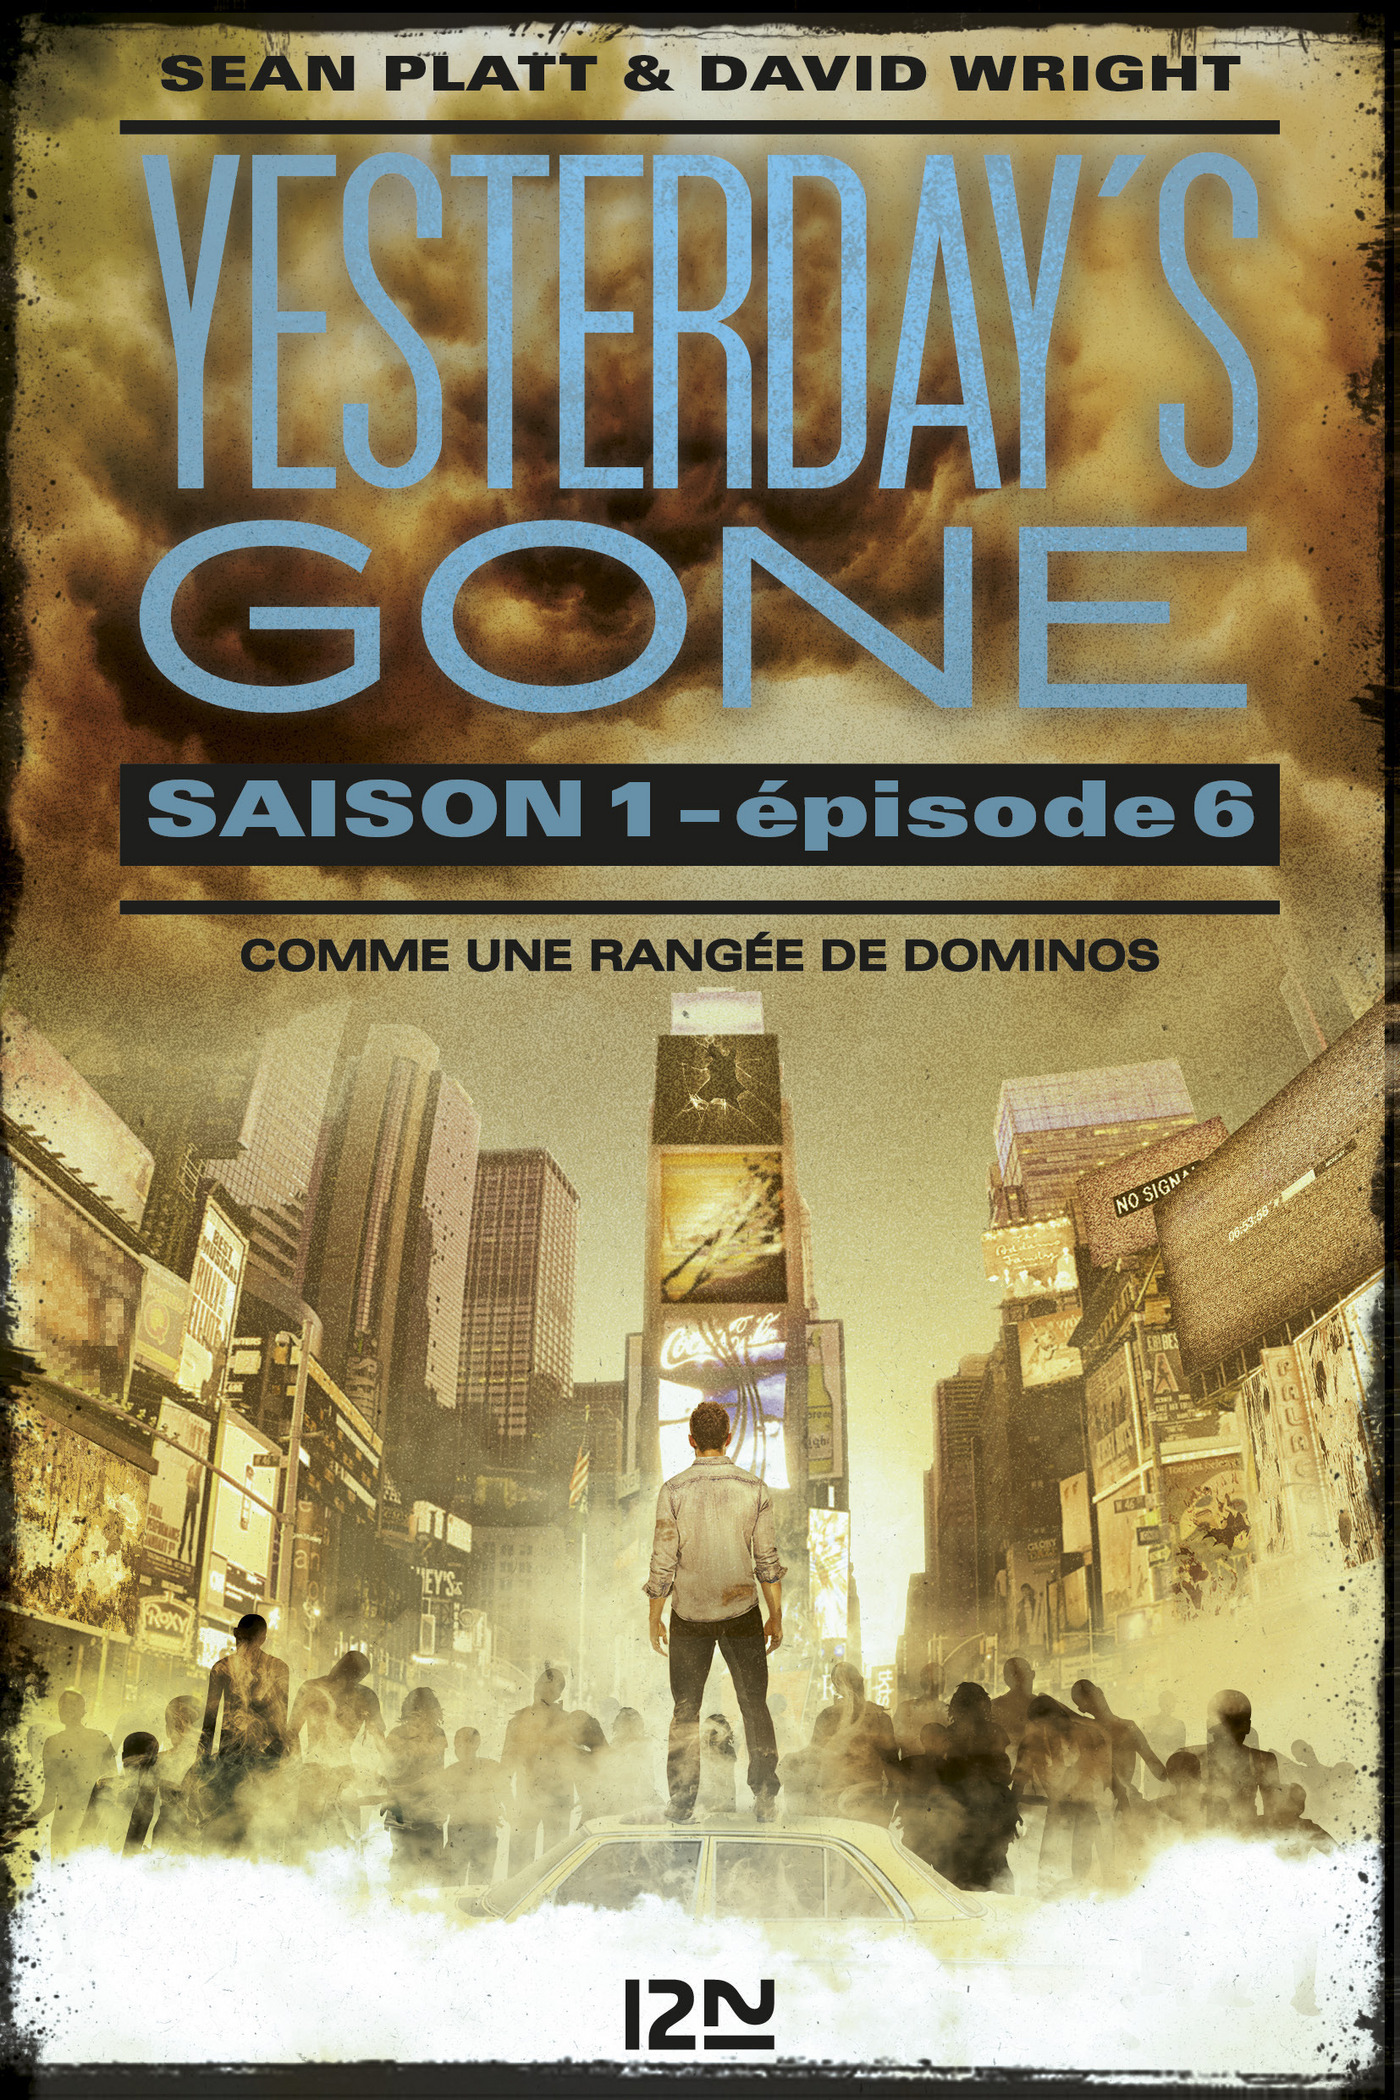 Yesterday's gone - saison 1 - épisode 6 (ebook)